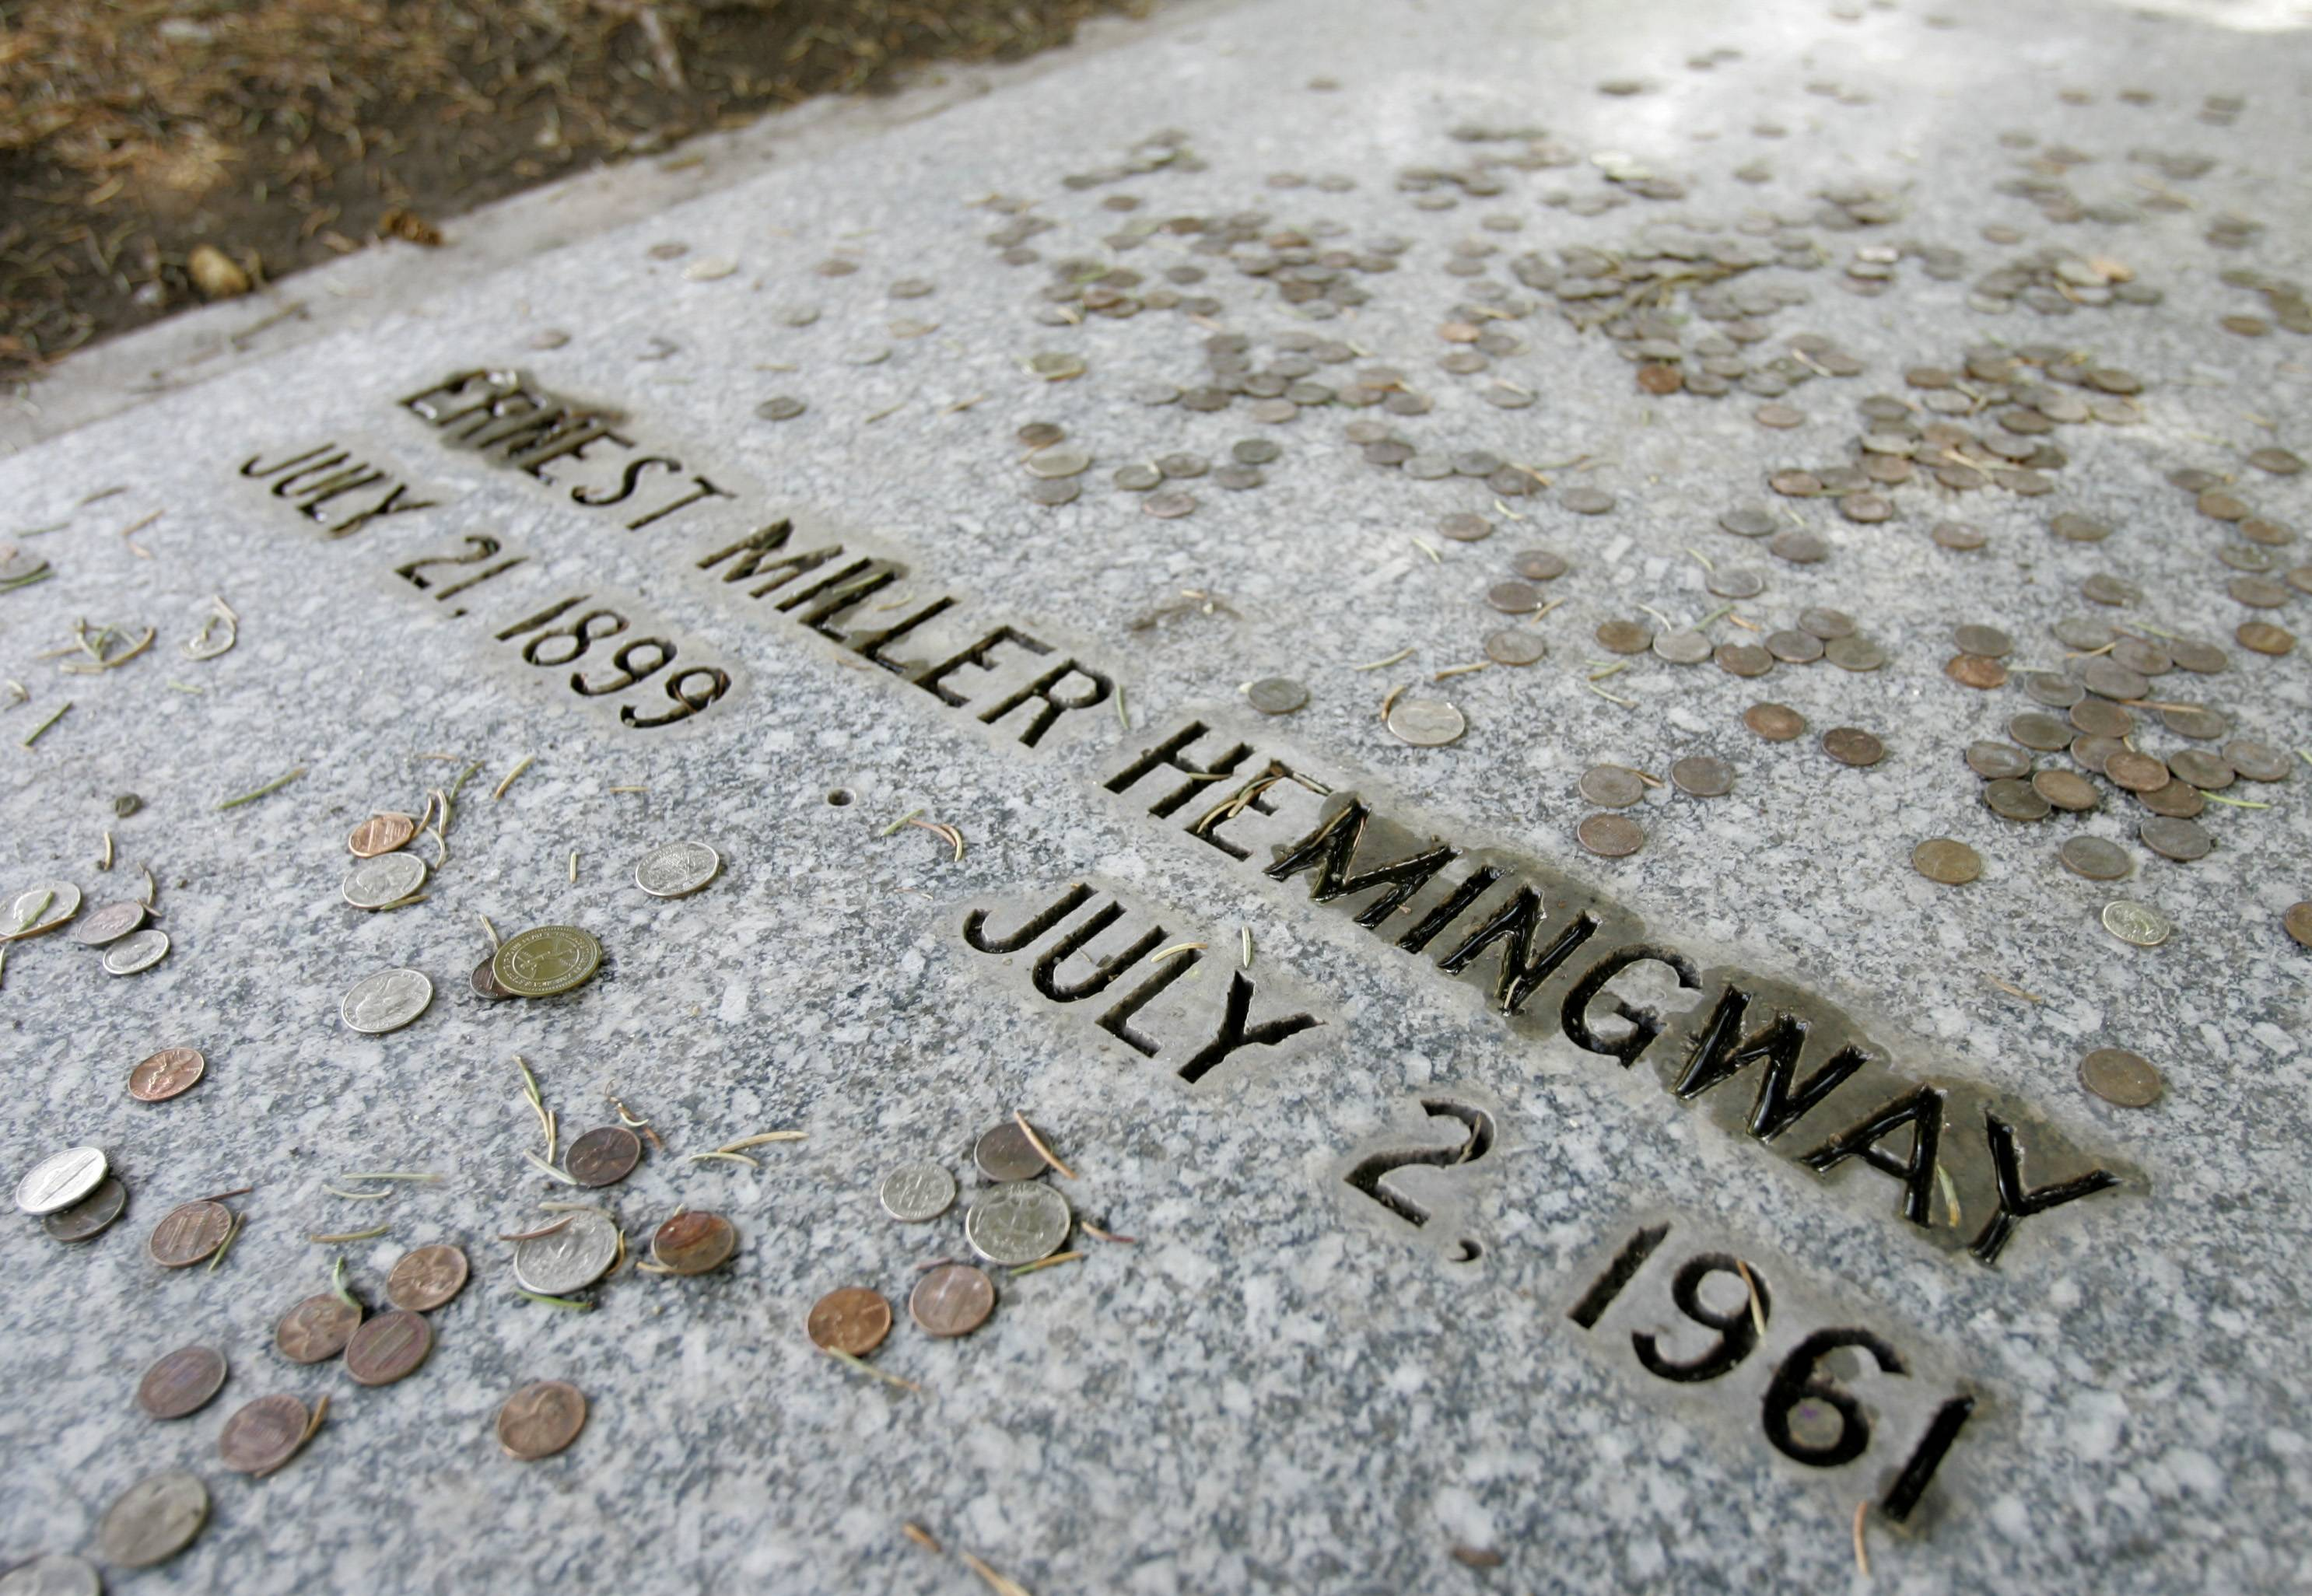 Coins left by visitors remain on the grave of Ernest Hemingway in Ketchum, Idaho. The house nearby in Ketchum that was owned by the famed novelist now belongs to the Nature Conservancy as part of a private preserve.